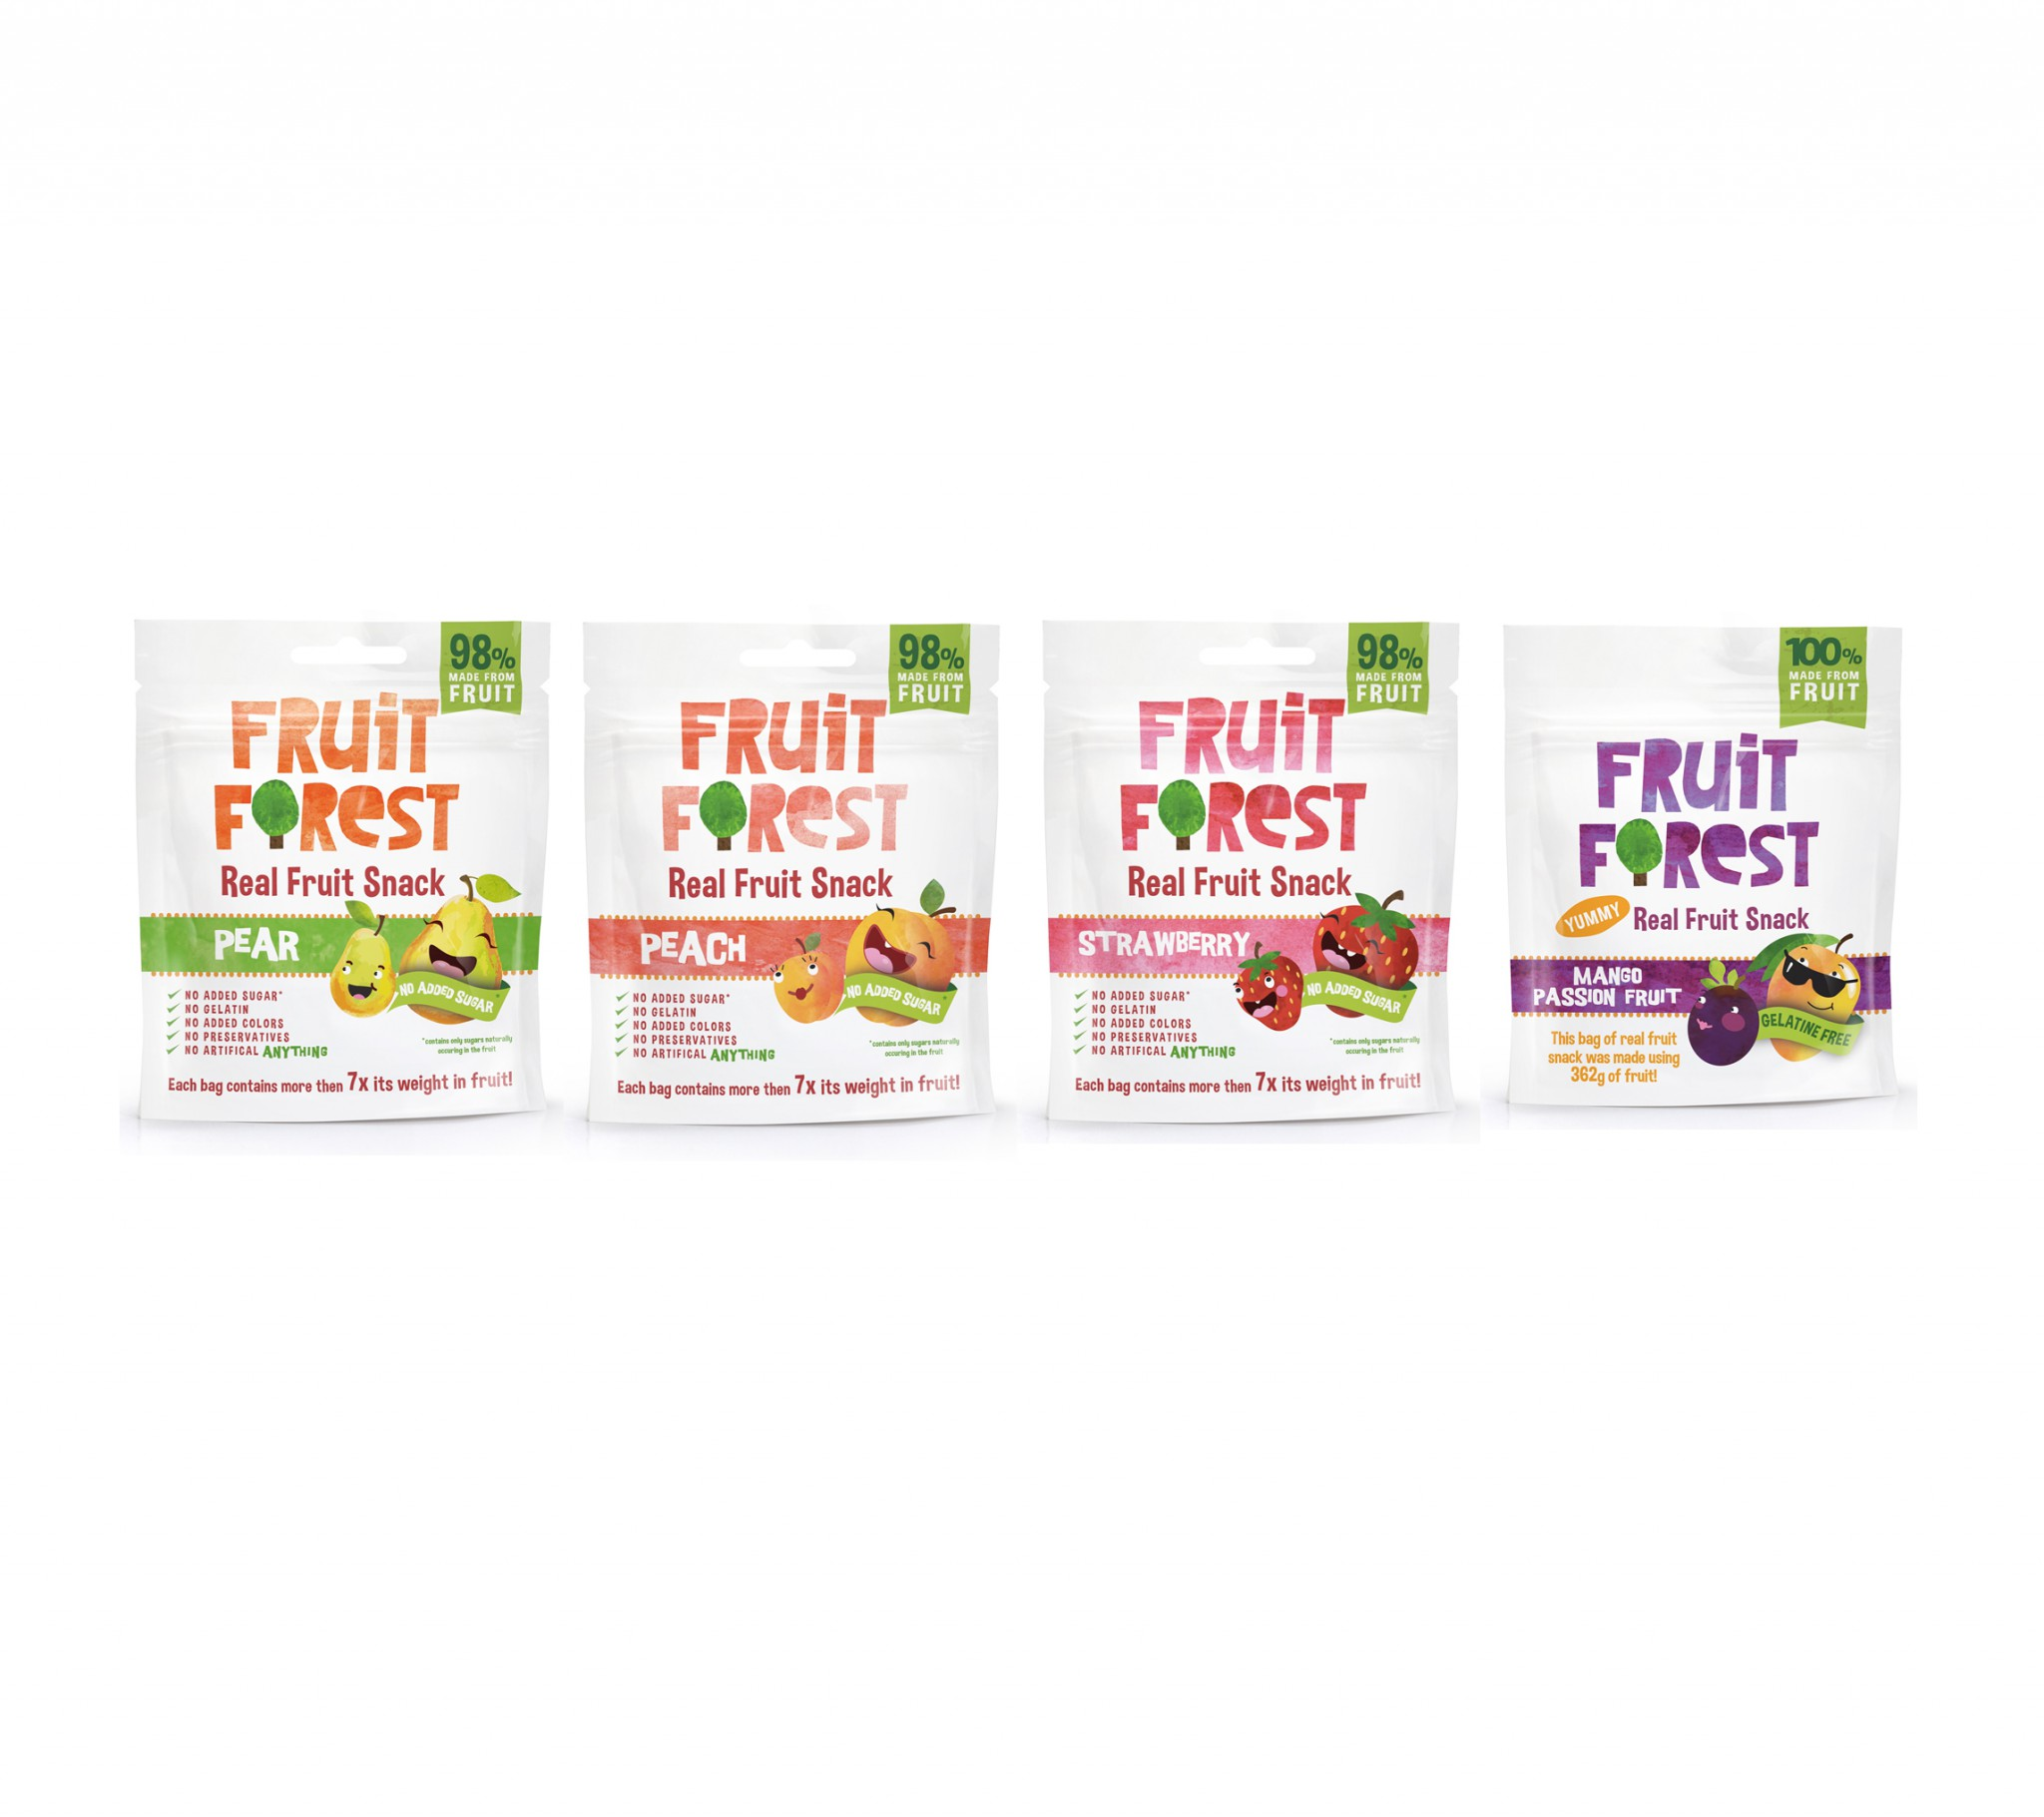 Snack de fruits (98% de fruits)